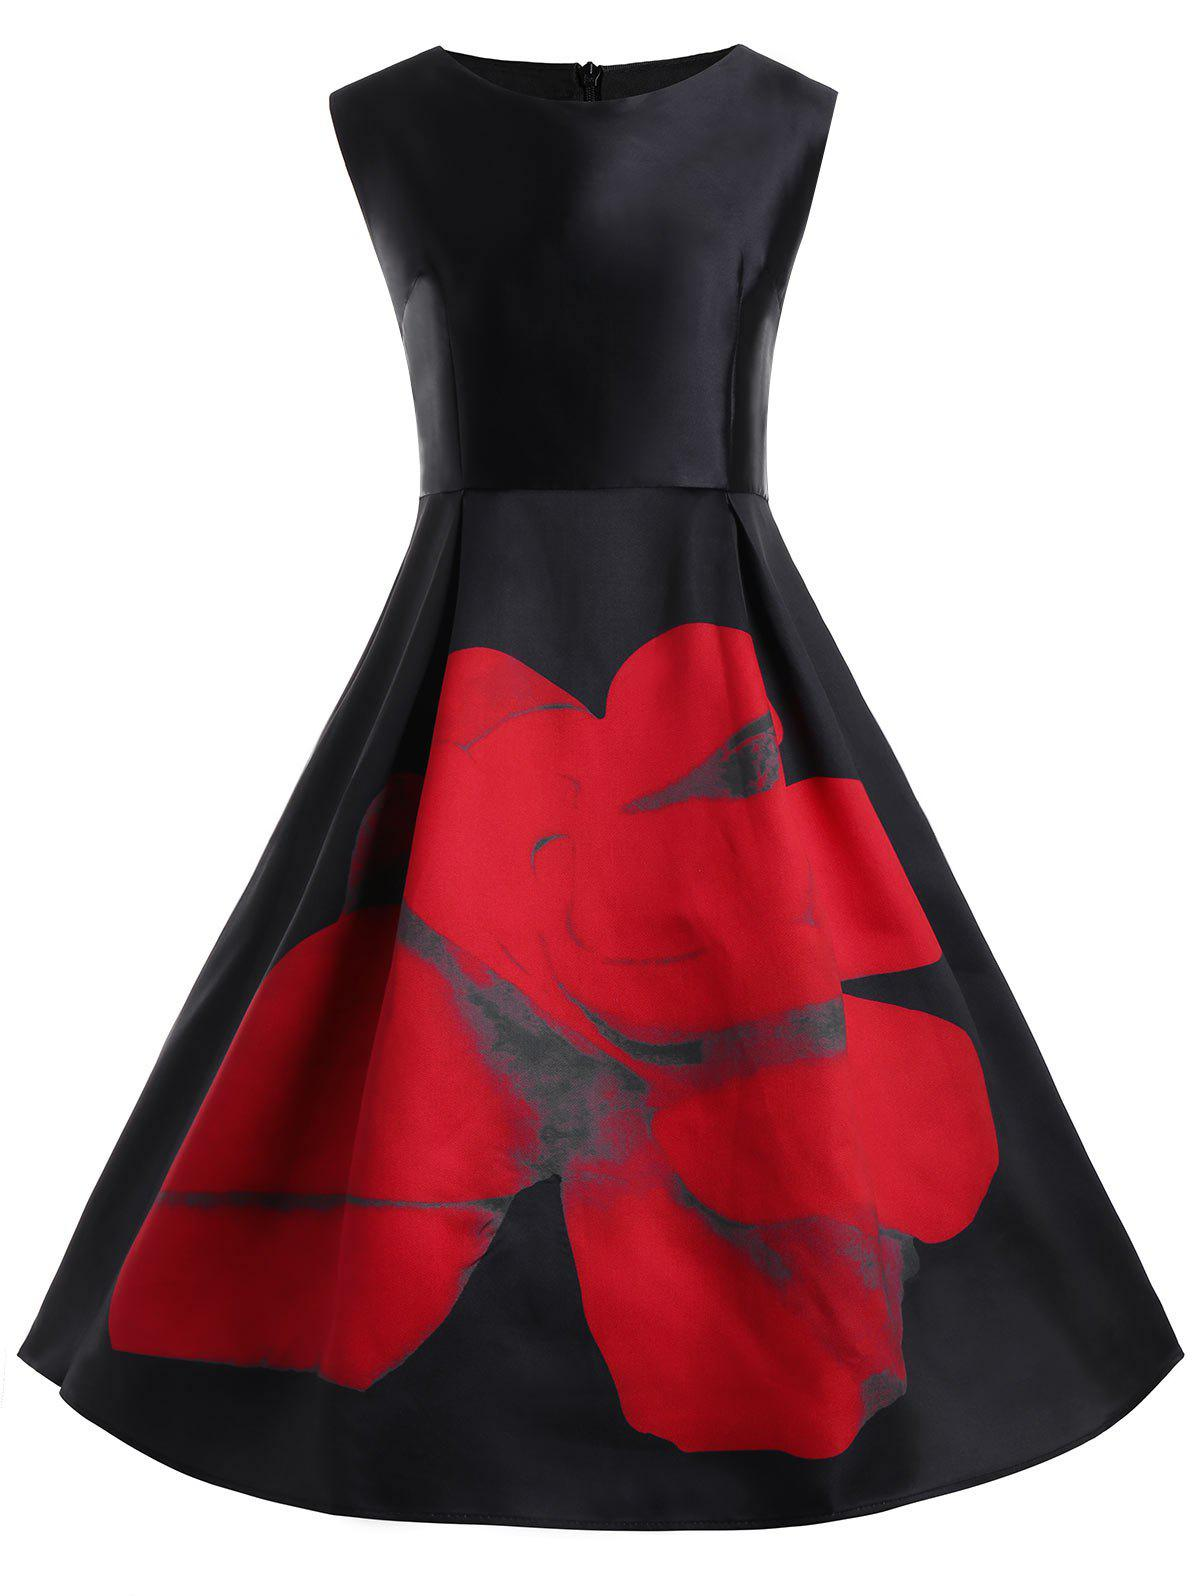 Floral Plus Size Vintage Flare Dress with PocketsWOMEN<br><br>Size: XL; Color: BLACK; Style: Cute; Material: Cotton,Cotton Blend,Polyester; Silhouette: Ball Gown; Dresses Length: Knee-Length; Neckline: Round Collar; Sleeve Length: Sleeveless; Waist: High Waisted; Embellishment: Pockets; Pattern Type: Floral,Print; With Belt: No; Season: Spring,Summer; Weight: 0.4500kg; Package Contents: 1 x Dress;